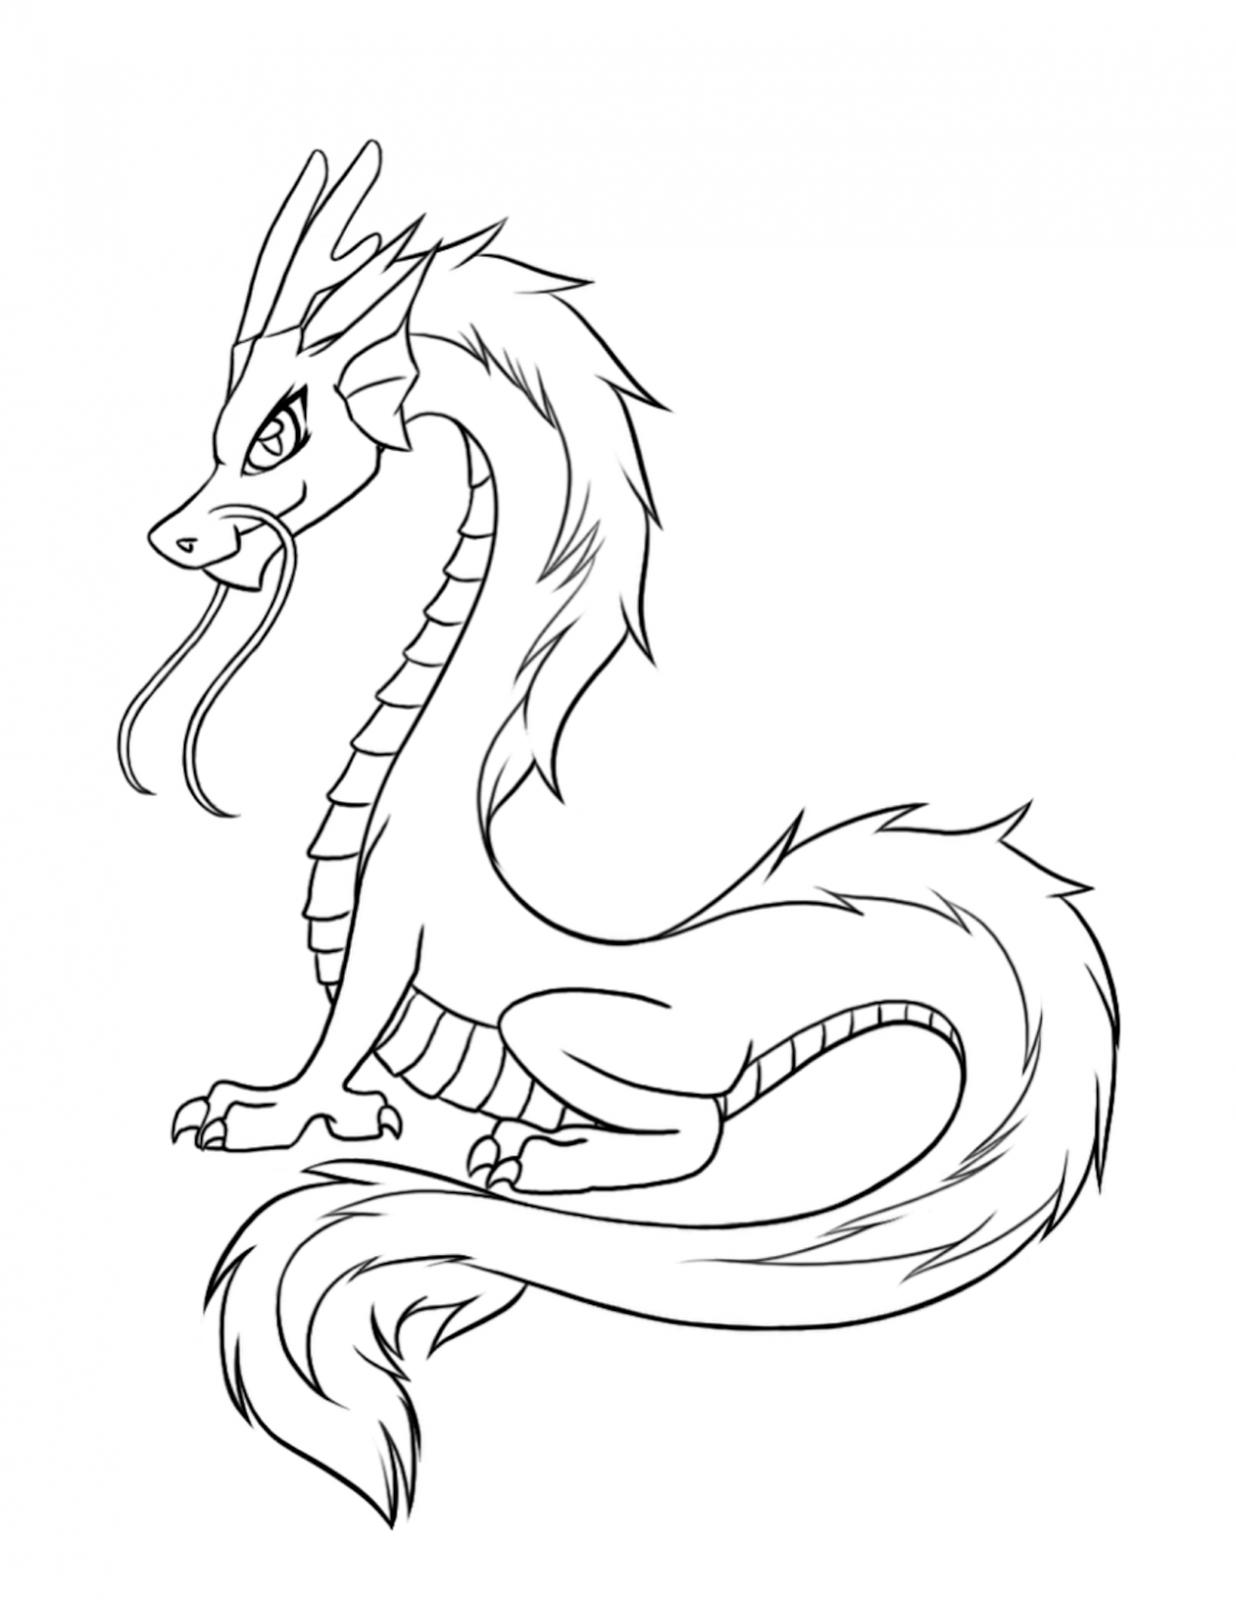 dragon pictures to color and print dragon coloring pages kidsuki and pictures dragon color to print